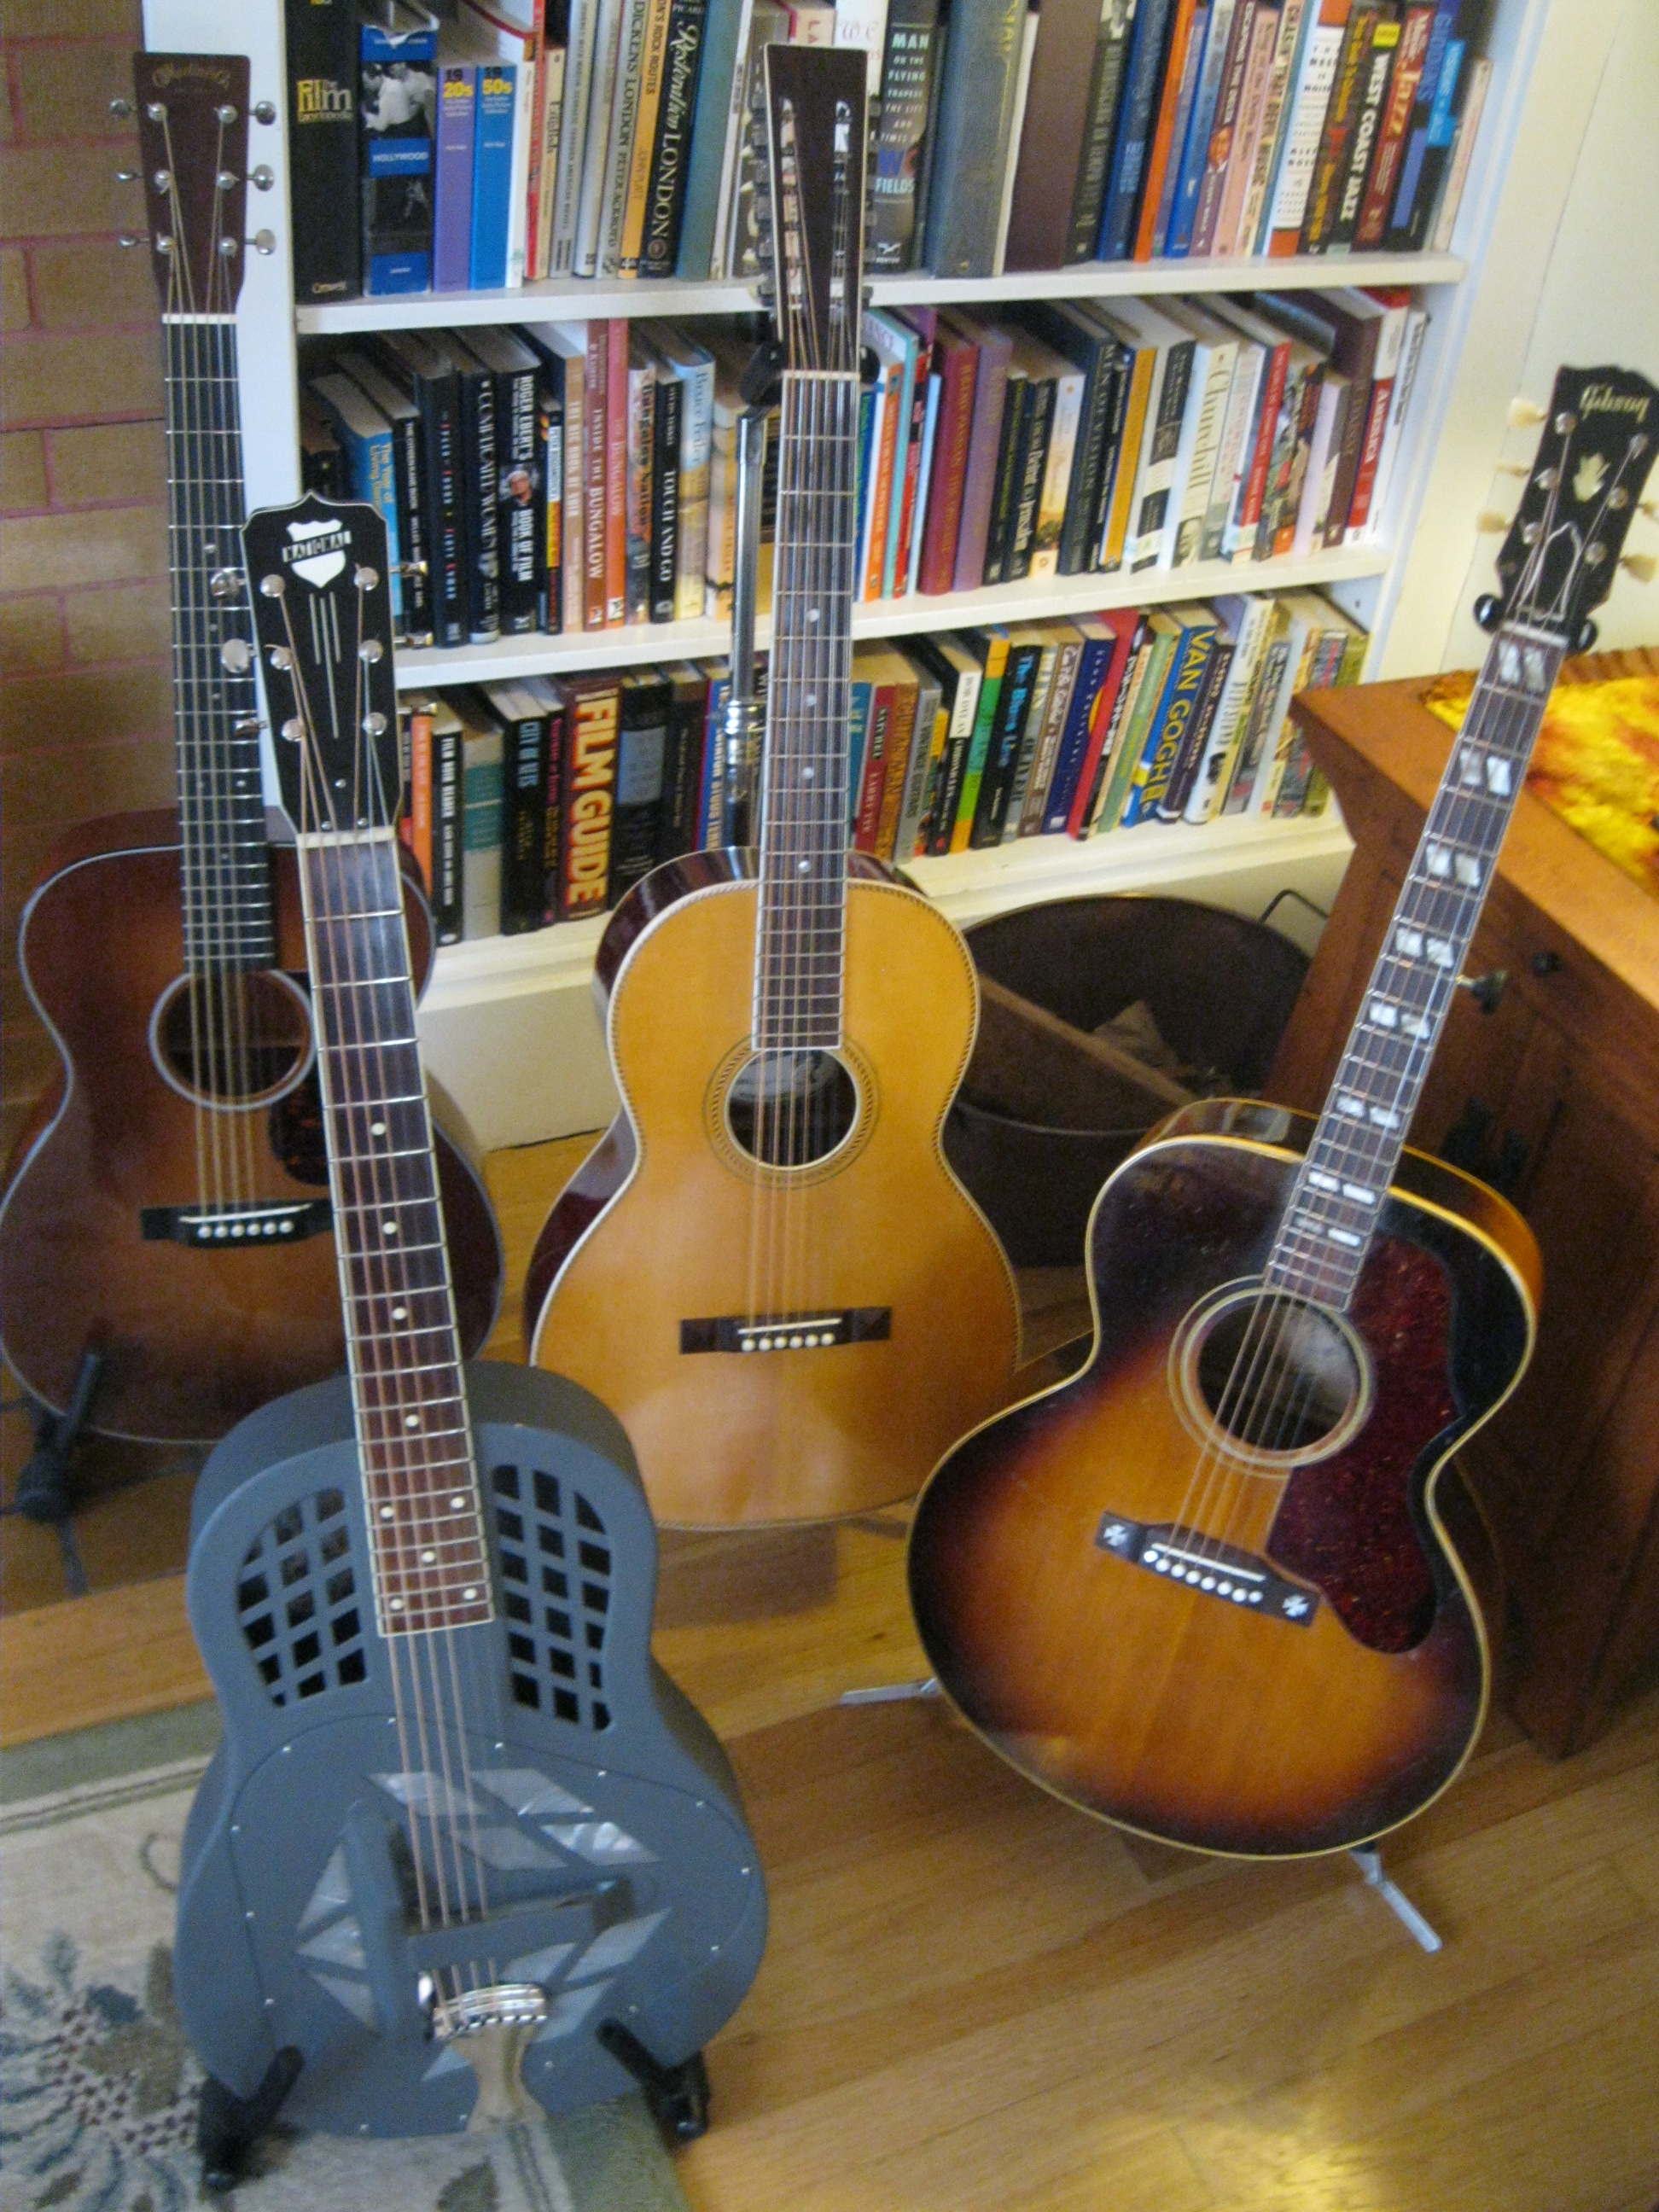 Martin 000-18 GE, National   Tricone, Fraulini Angelina, vintage 1952 Gibson J-185 .